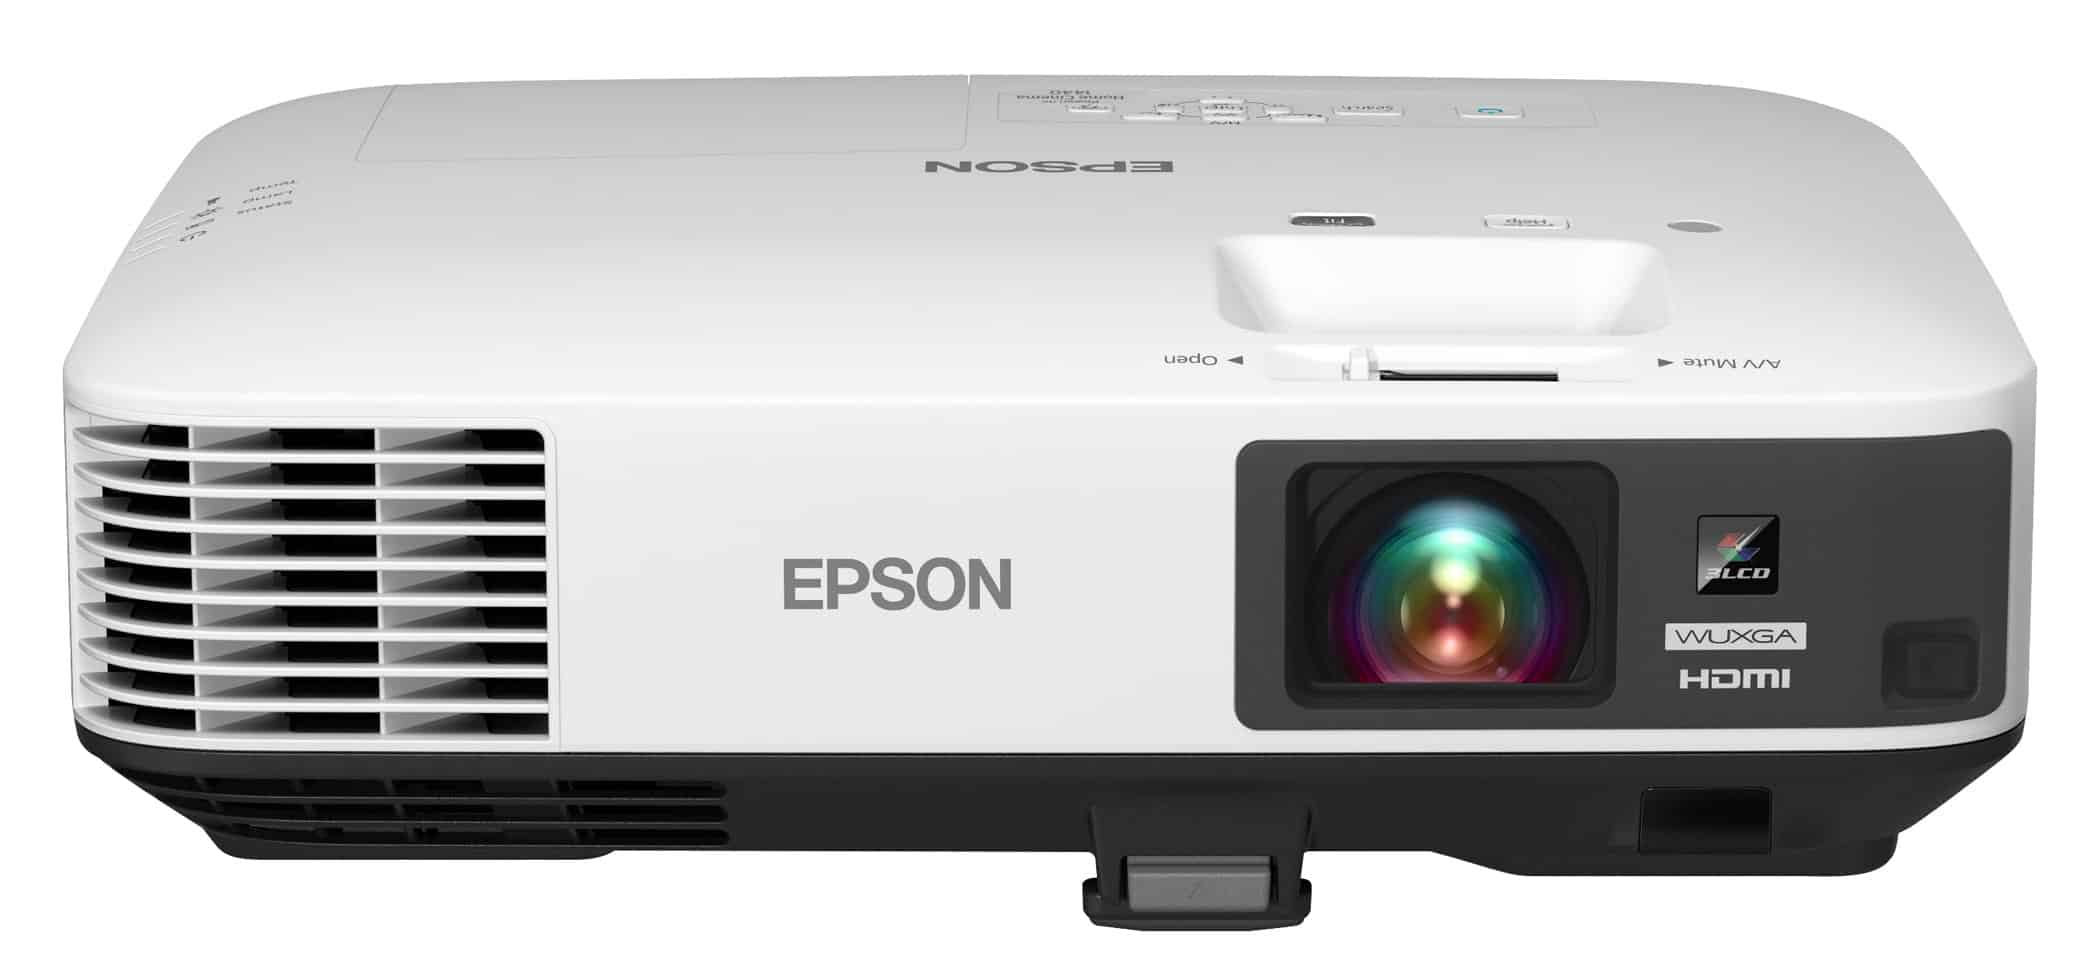 Honest Review: Epson Home Cinema 11400 Projector